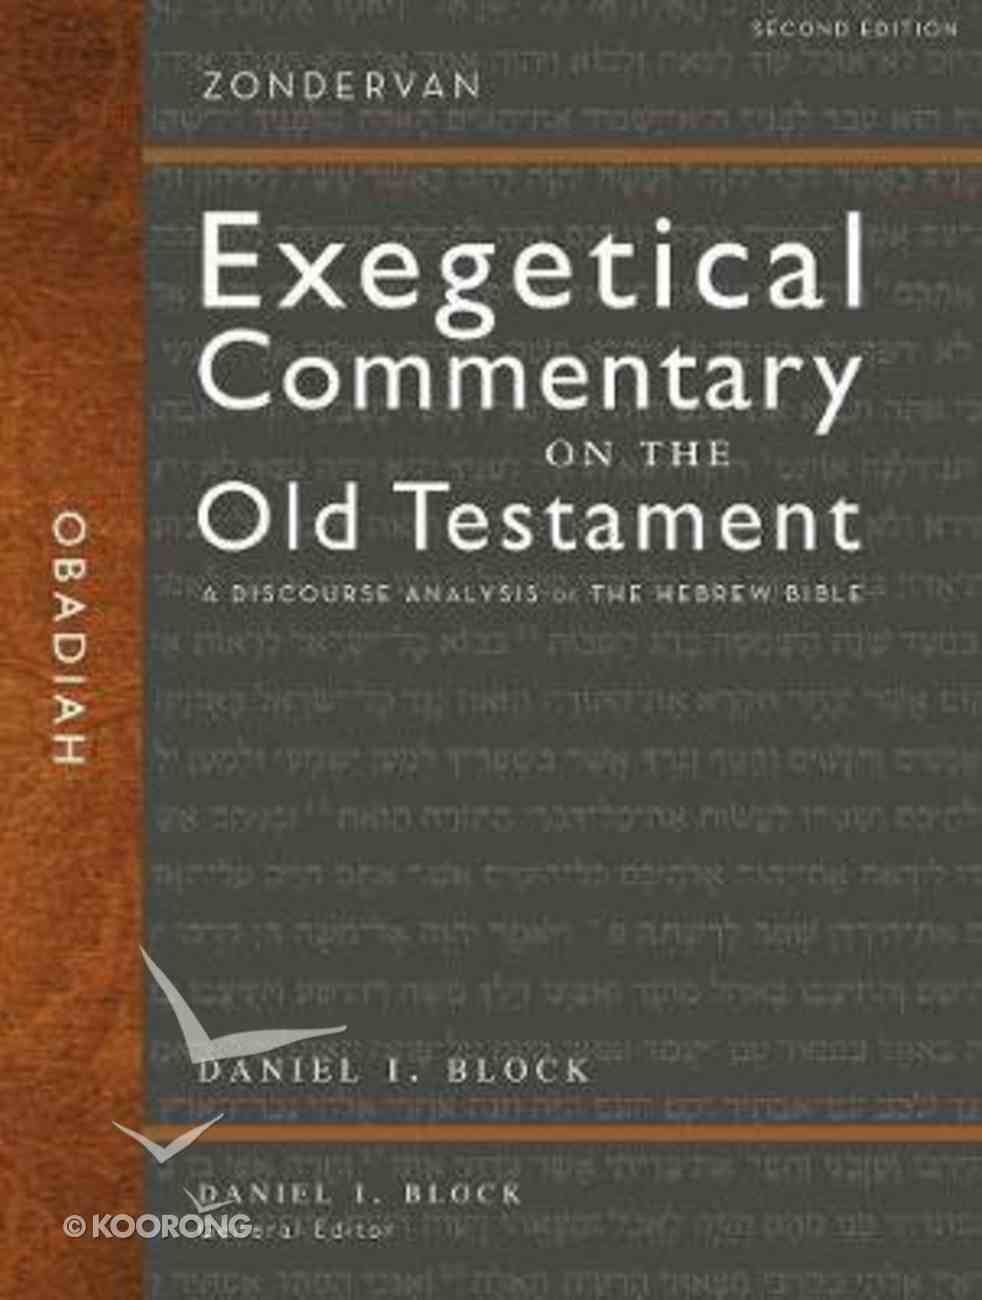 Obadiah: A Discourse Analysis of the Hebrew Bible (Zondervan Exegetical Commentary On The Old Testament Series) Hardback